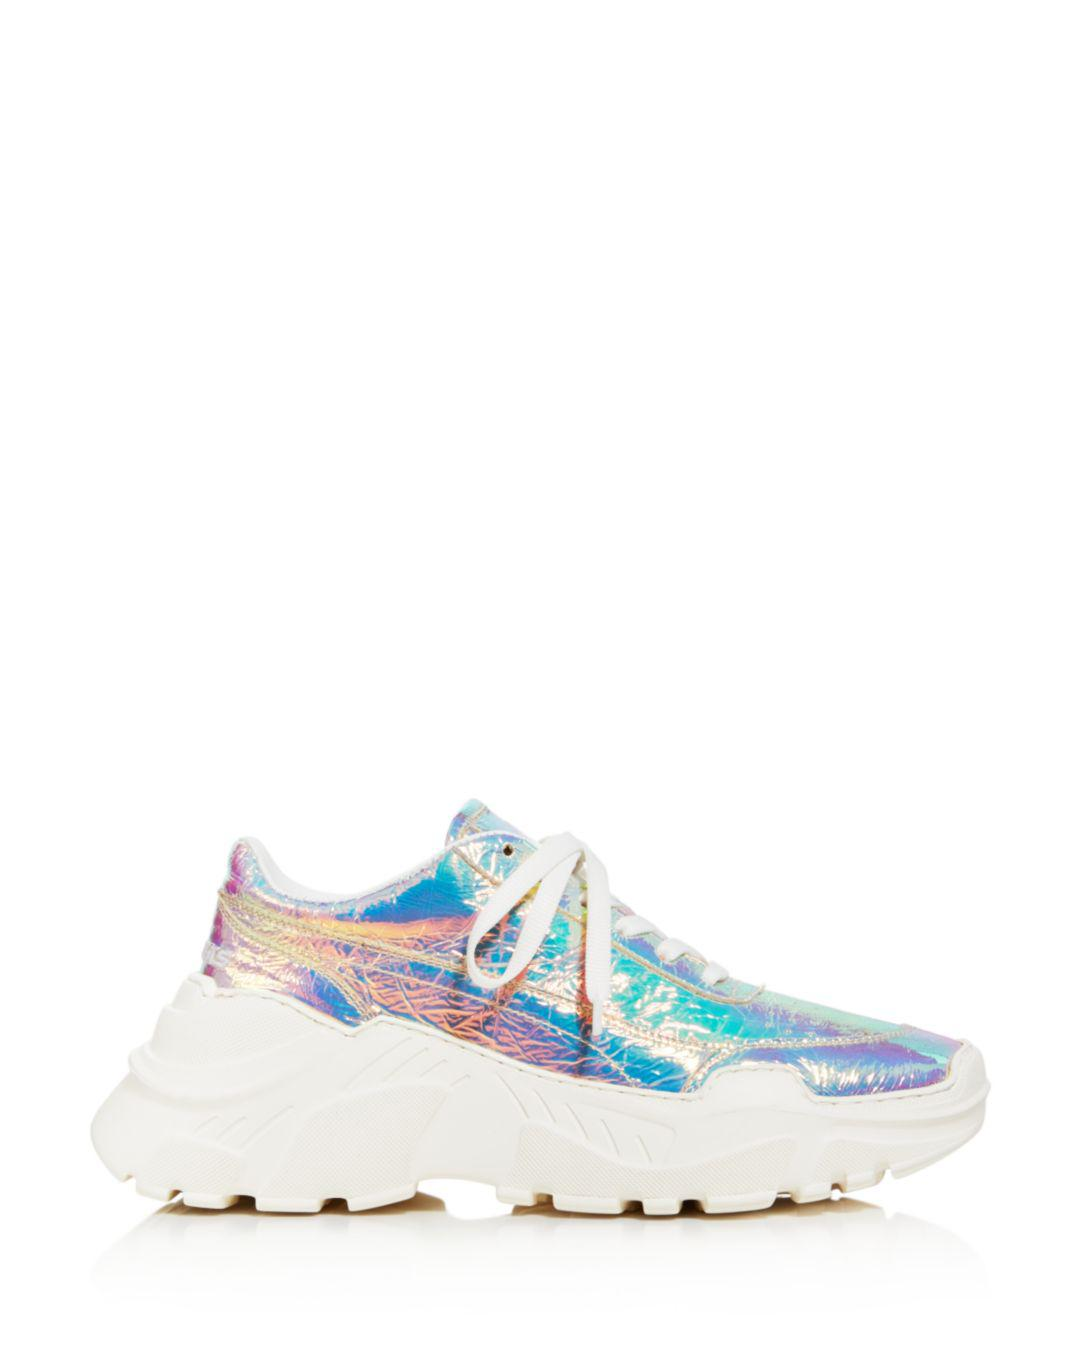 d9226306ccb5 Lyst - Joshua Sanders Women s Leather   Holographic Foil Lace Up Sneakers  in White